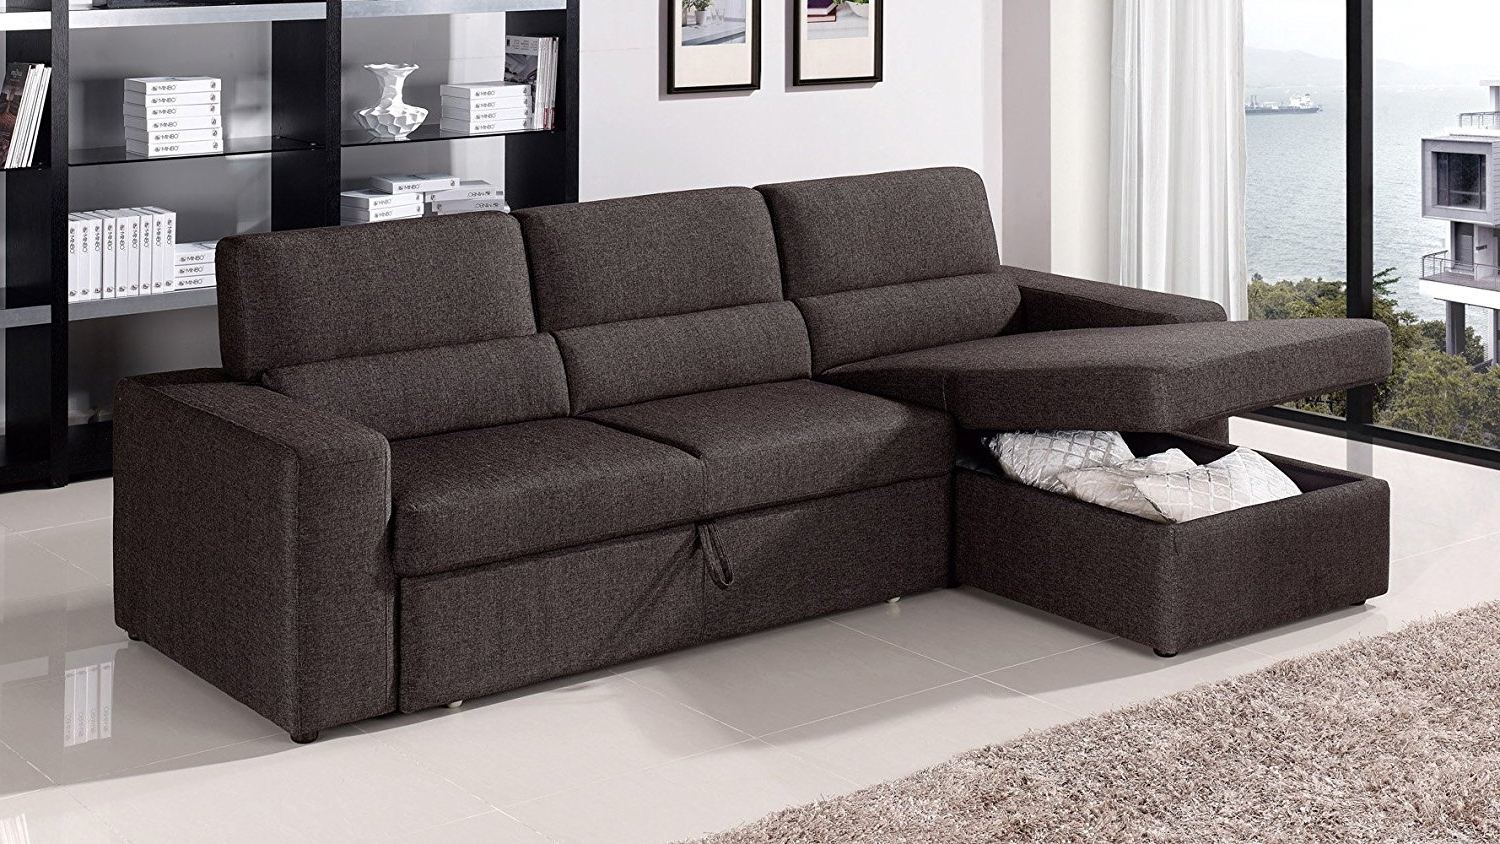 Popular Amazon: Black/brown Clubber Sleeper Sectional Sofa – Left Inside Chaise Sectional Sleepers (View 2 of 15)